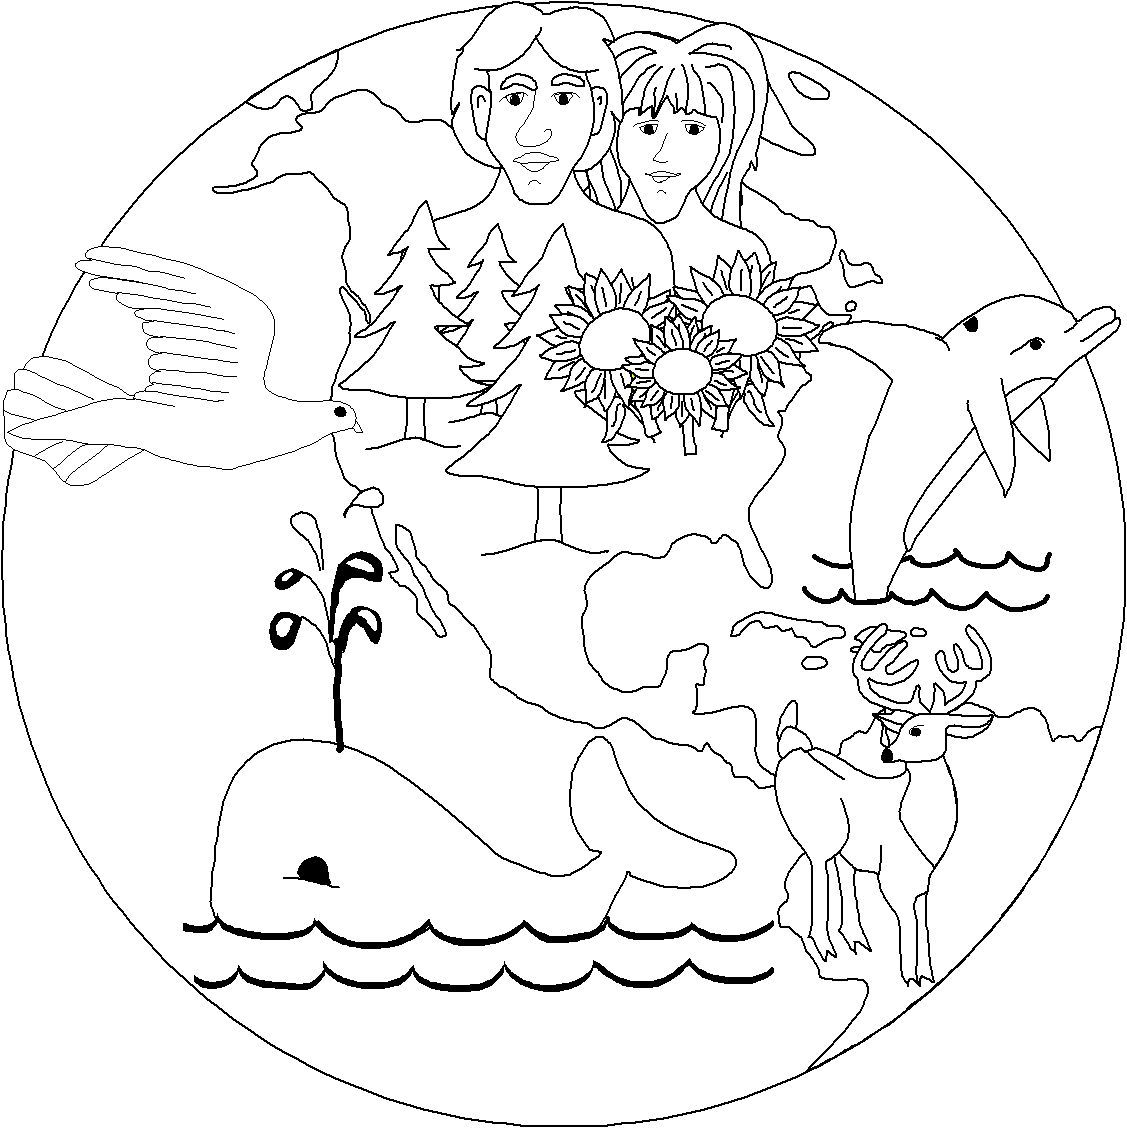 Creation christian free coloring pages ~ Free Christian Graphics of creation | Bible Stories for ...